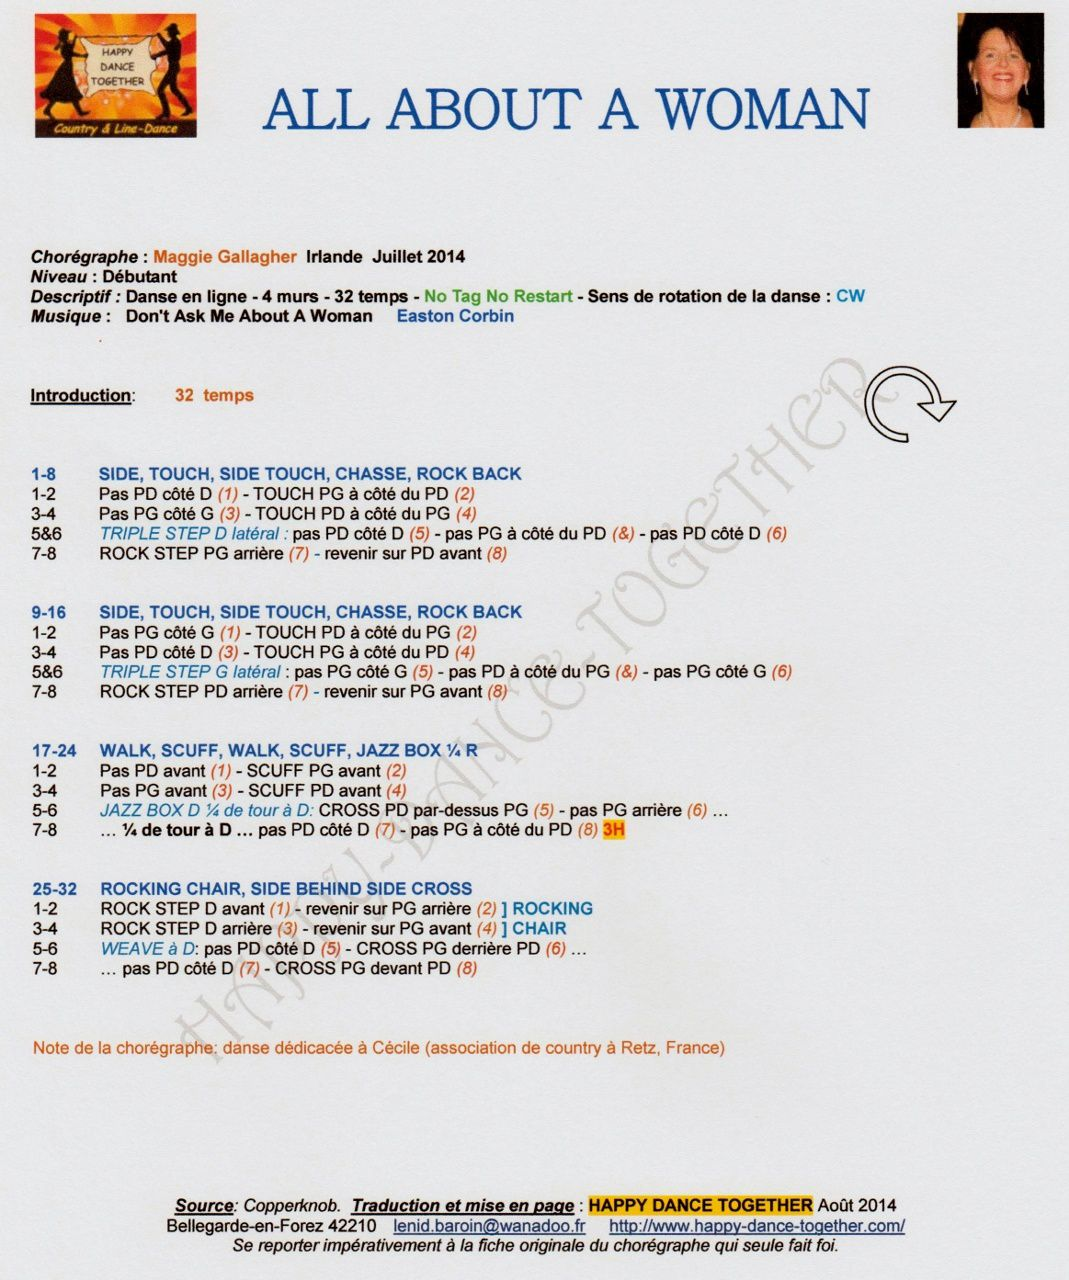 ALL ABOUT A WOMAN